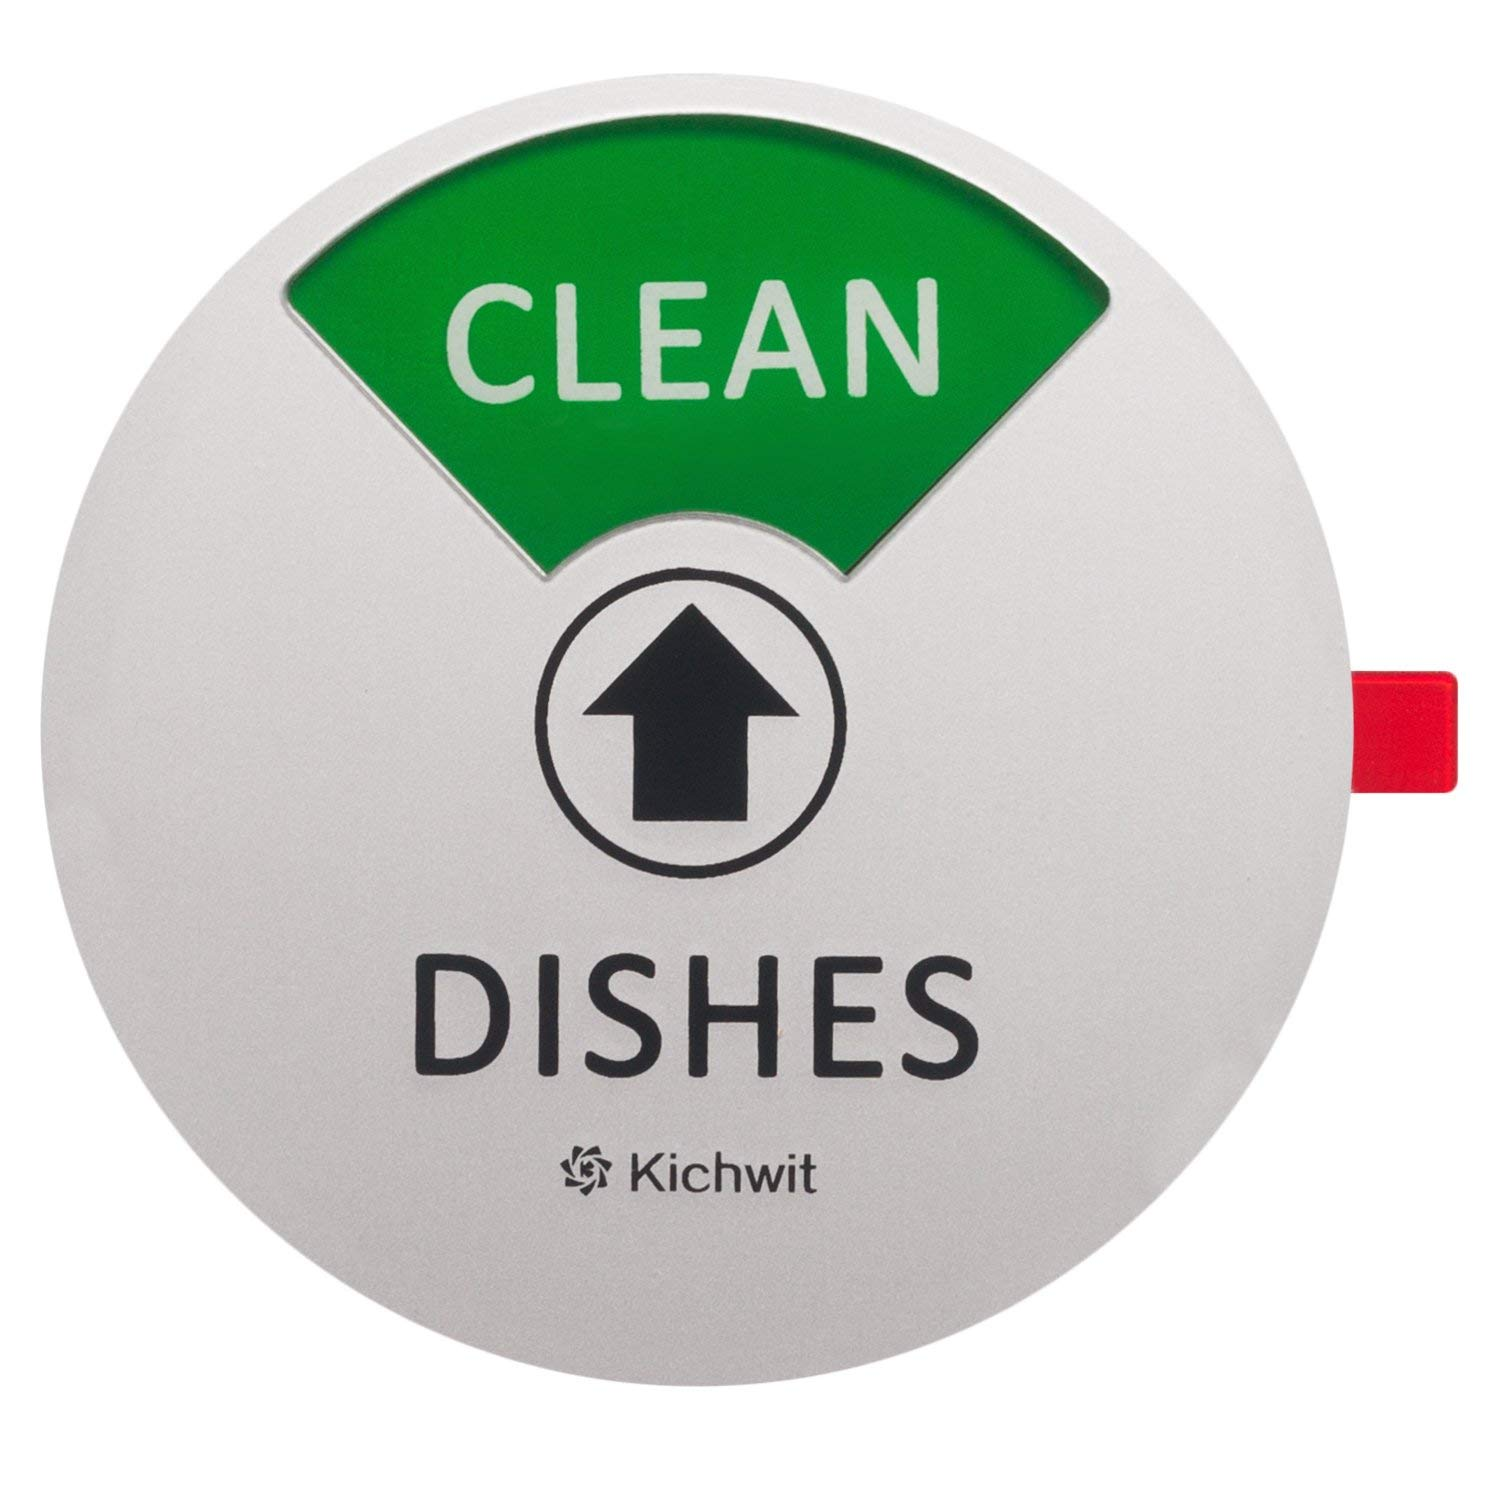 Kichwit dishwasher magnet clean dirty sign indicator works on all dishwashers non scratch strong magnetic backing residue free adhesive included 4 inch